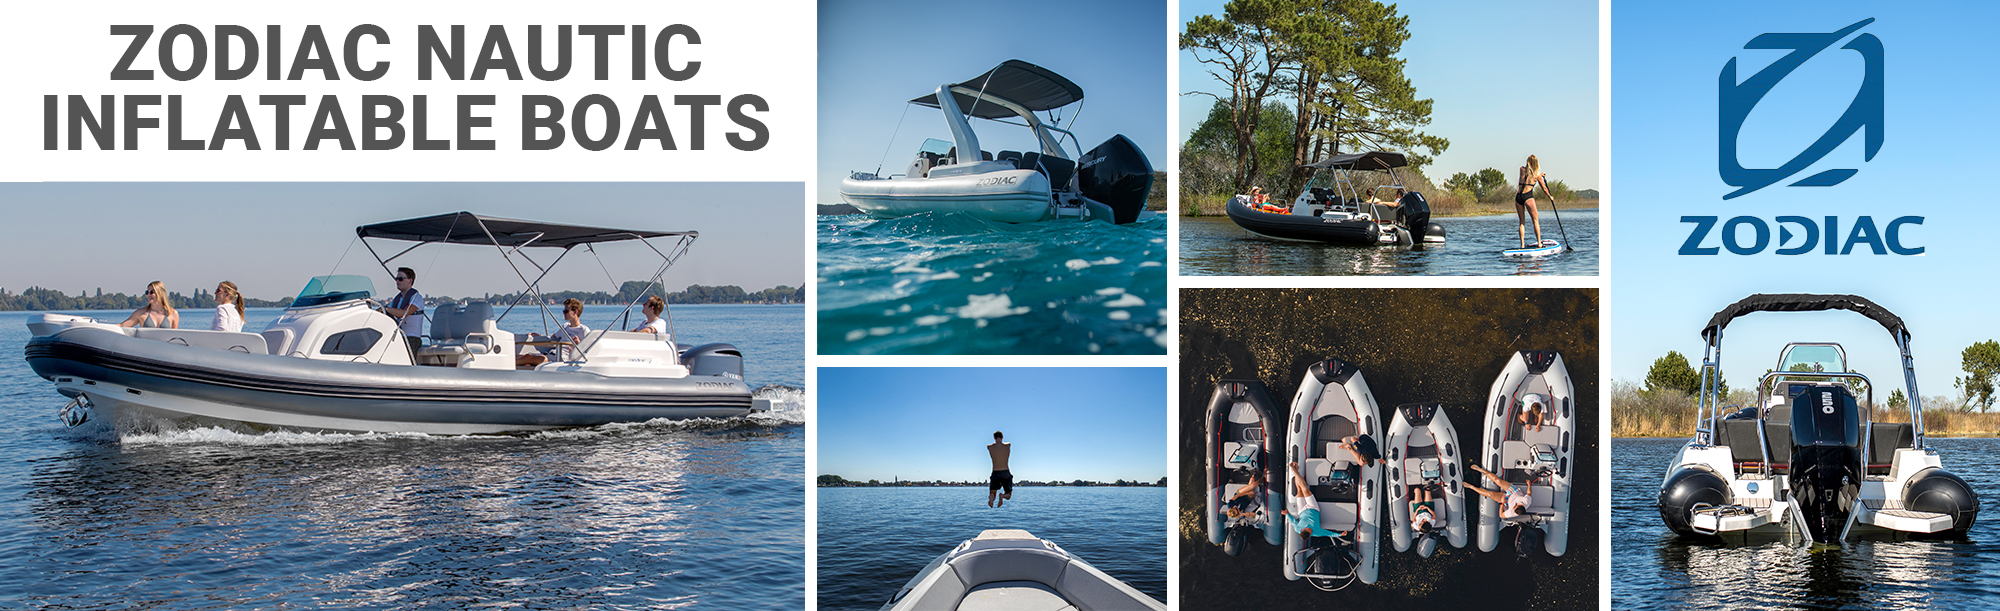 Zodiac Inflatable RIBs, dinghies, and center consoles for SALE at the Boat Specialists.